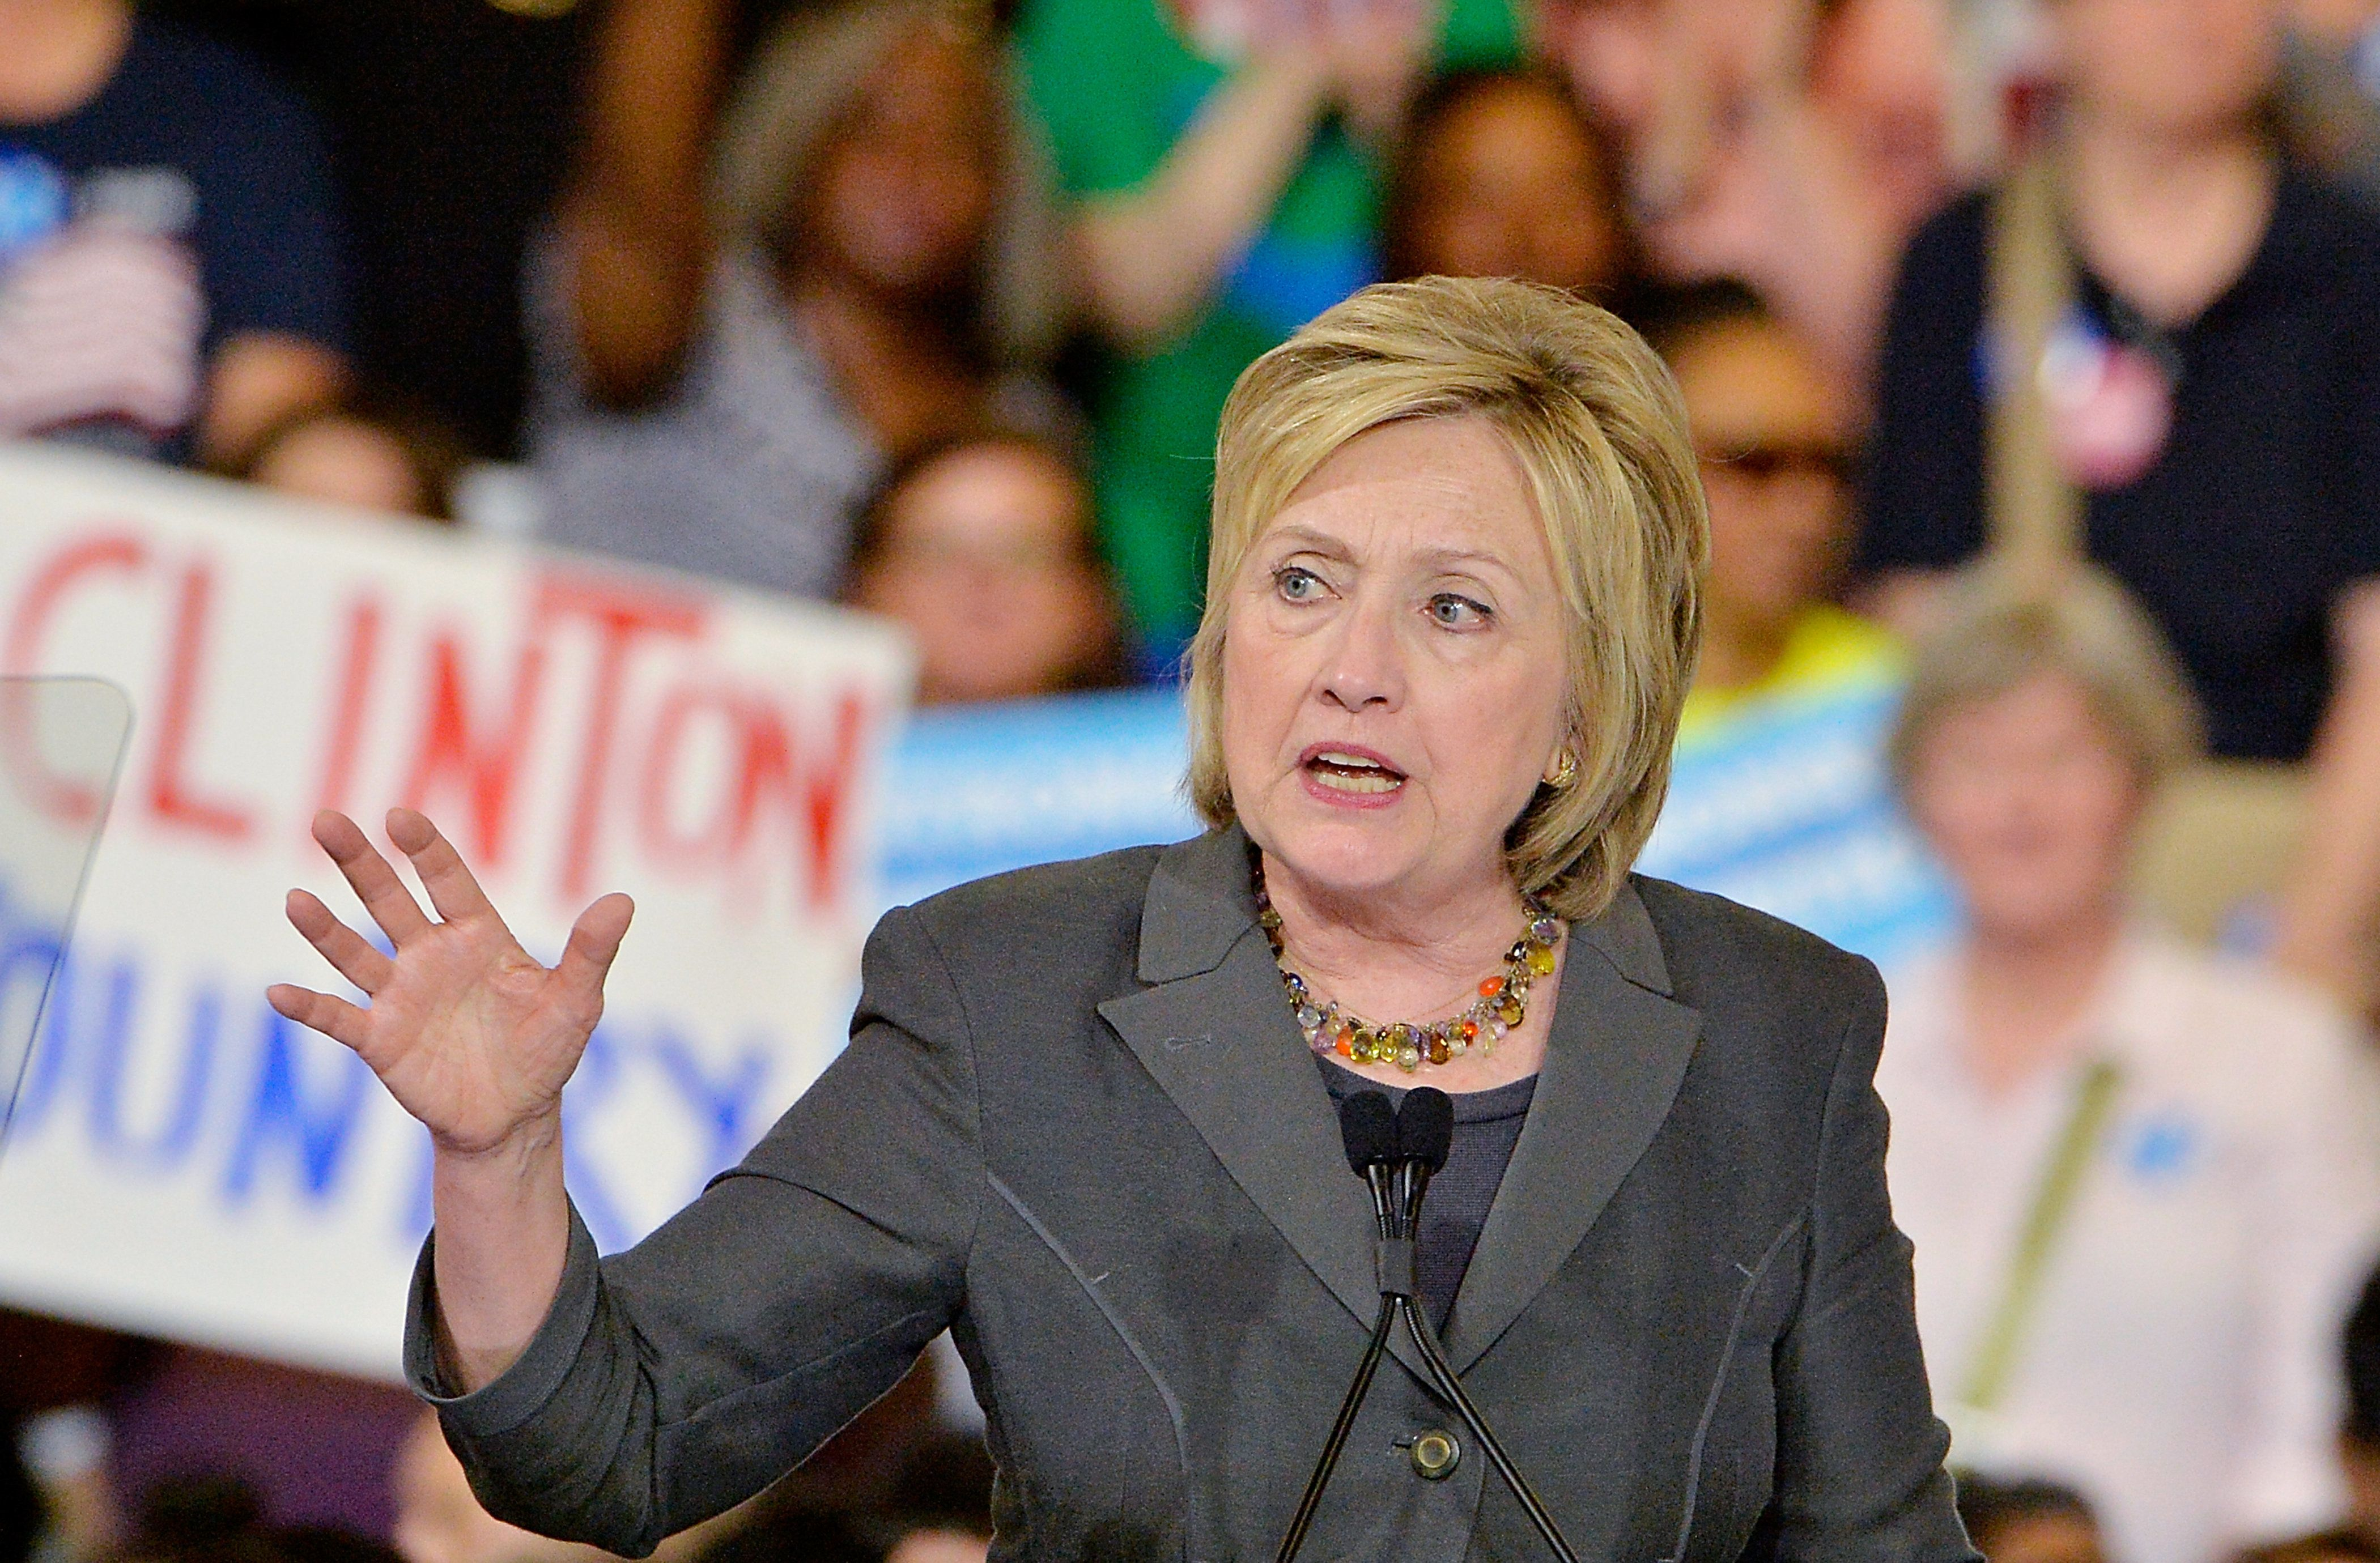 RALEIGH, NC - JUNE 22:  Presumptive Democratic presidential nominee Hillary Clinton speaks during a campaign event at the North Carolina State Fairgrounds on June 22, 2016 in Raleigh, North Carolina. Clinton discussed her vision for America in the future and the issues she would tackle if elected president. (Photo by Sara D. Davis/Getty Images)